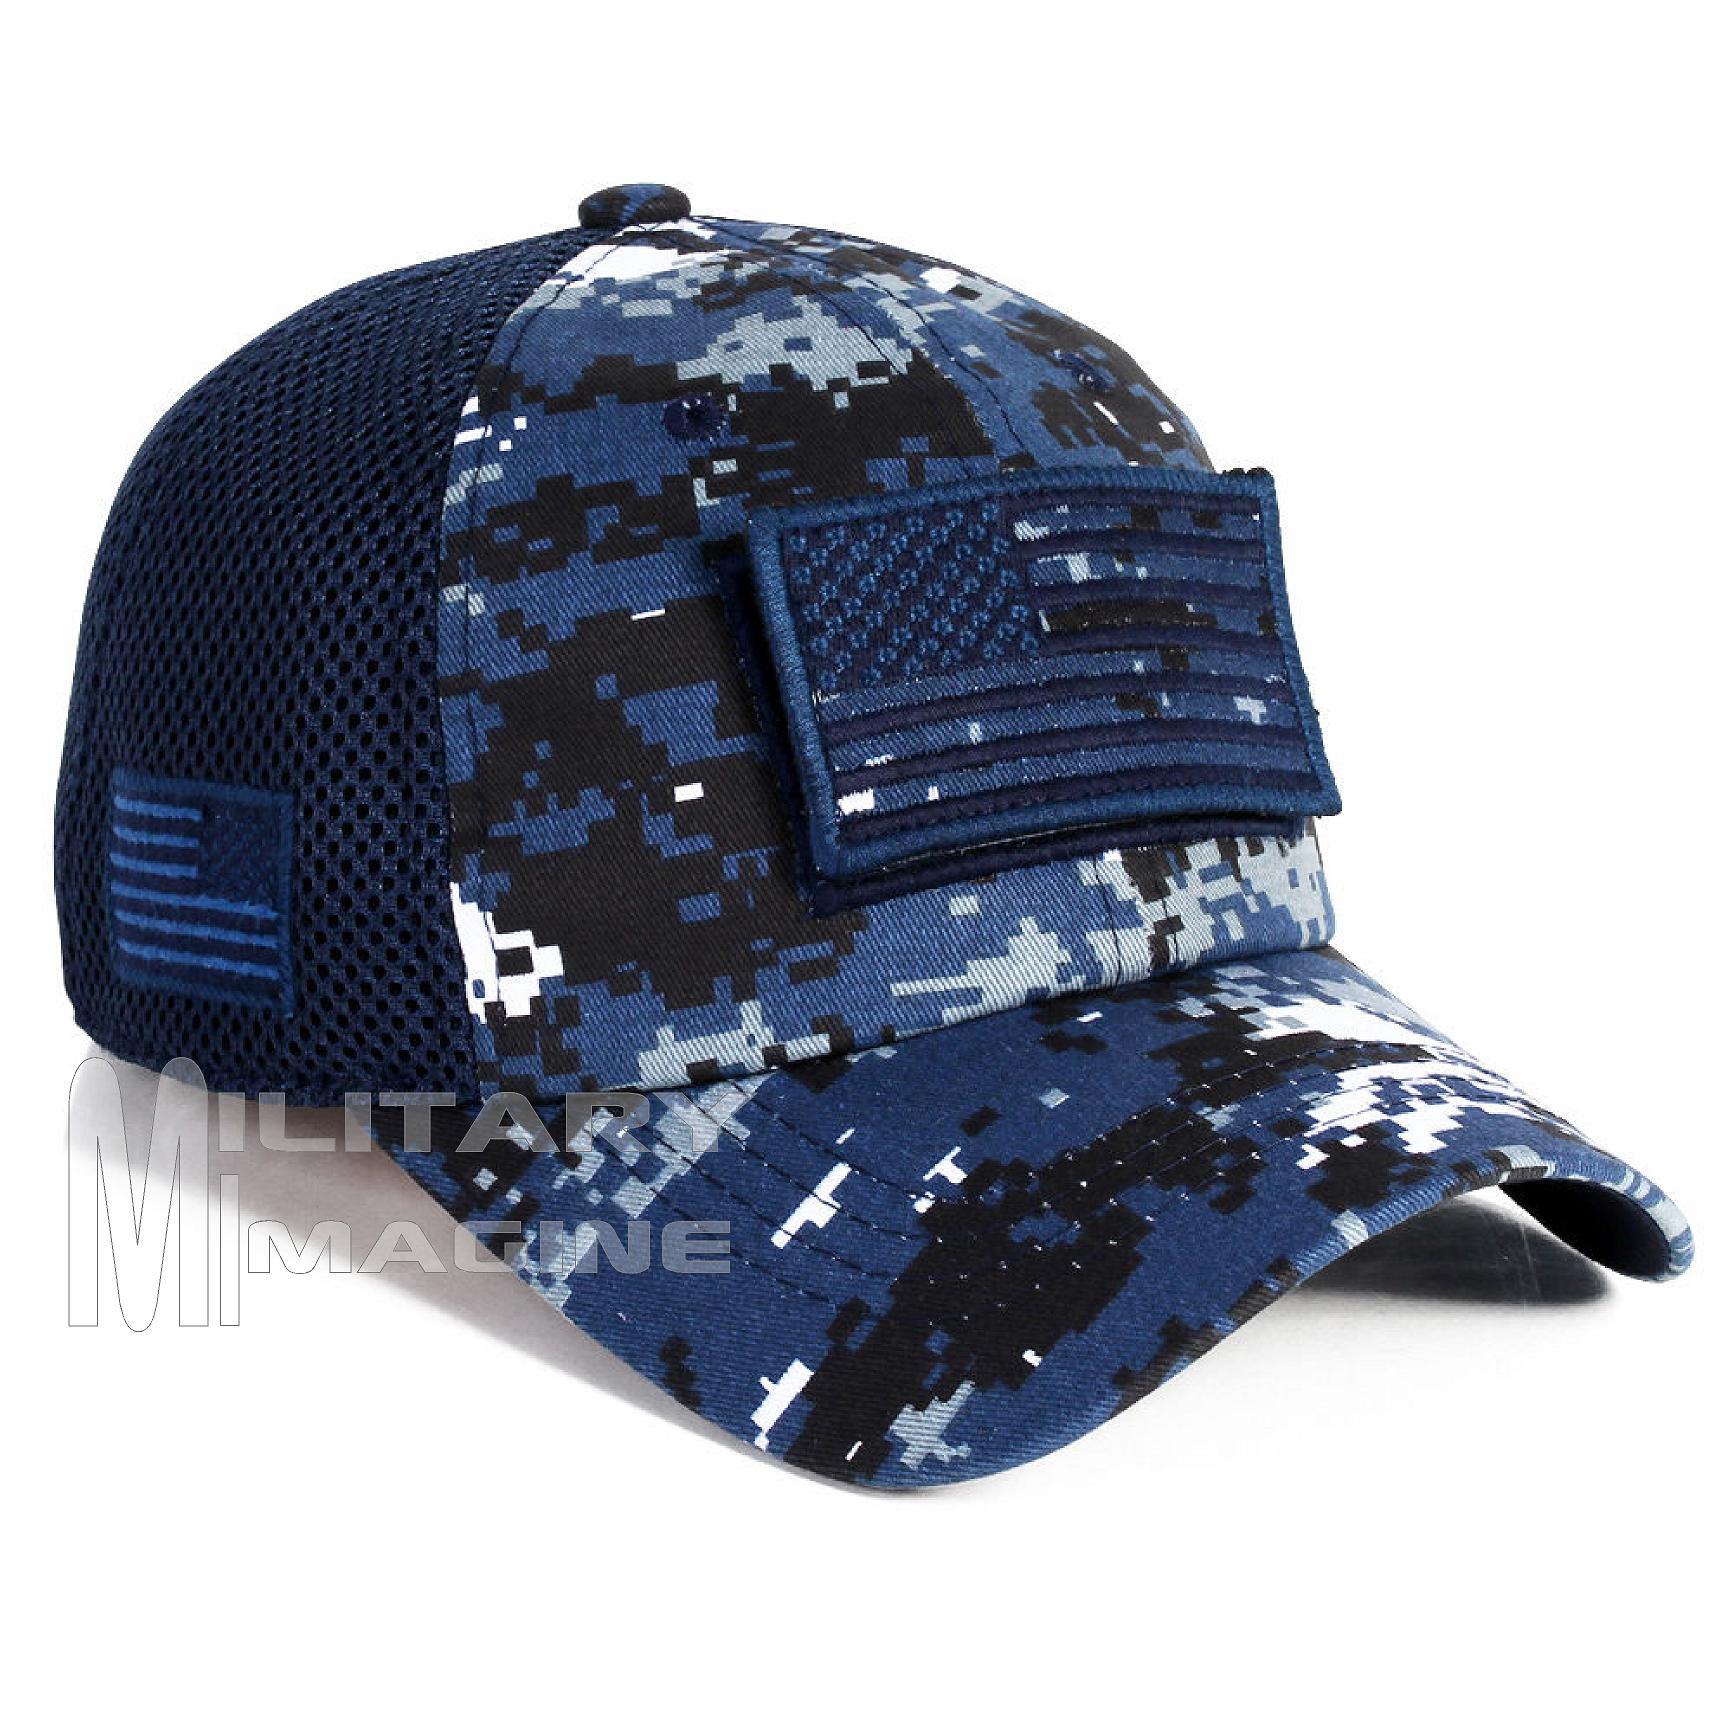 63ce4d7bfed USA Flag hat Navy Digital Patch Micro Mesh Tactical Operator Military cap.  Return to Previous Page. Sale!  1